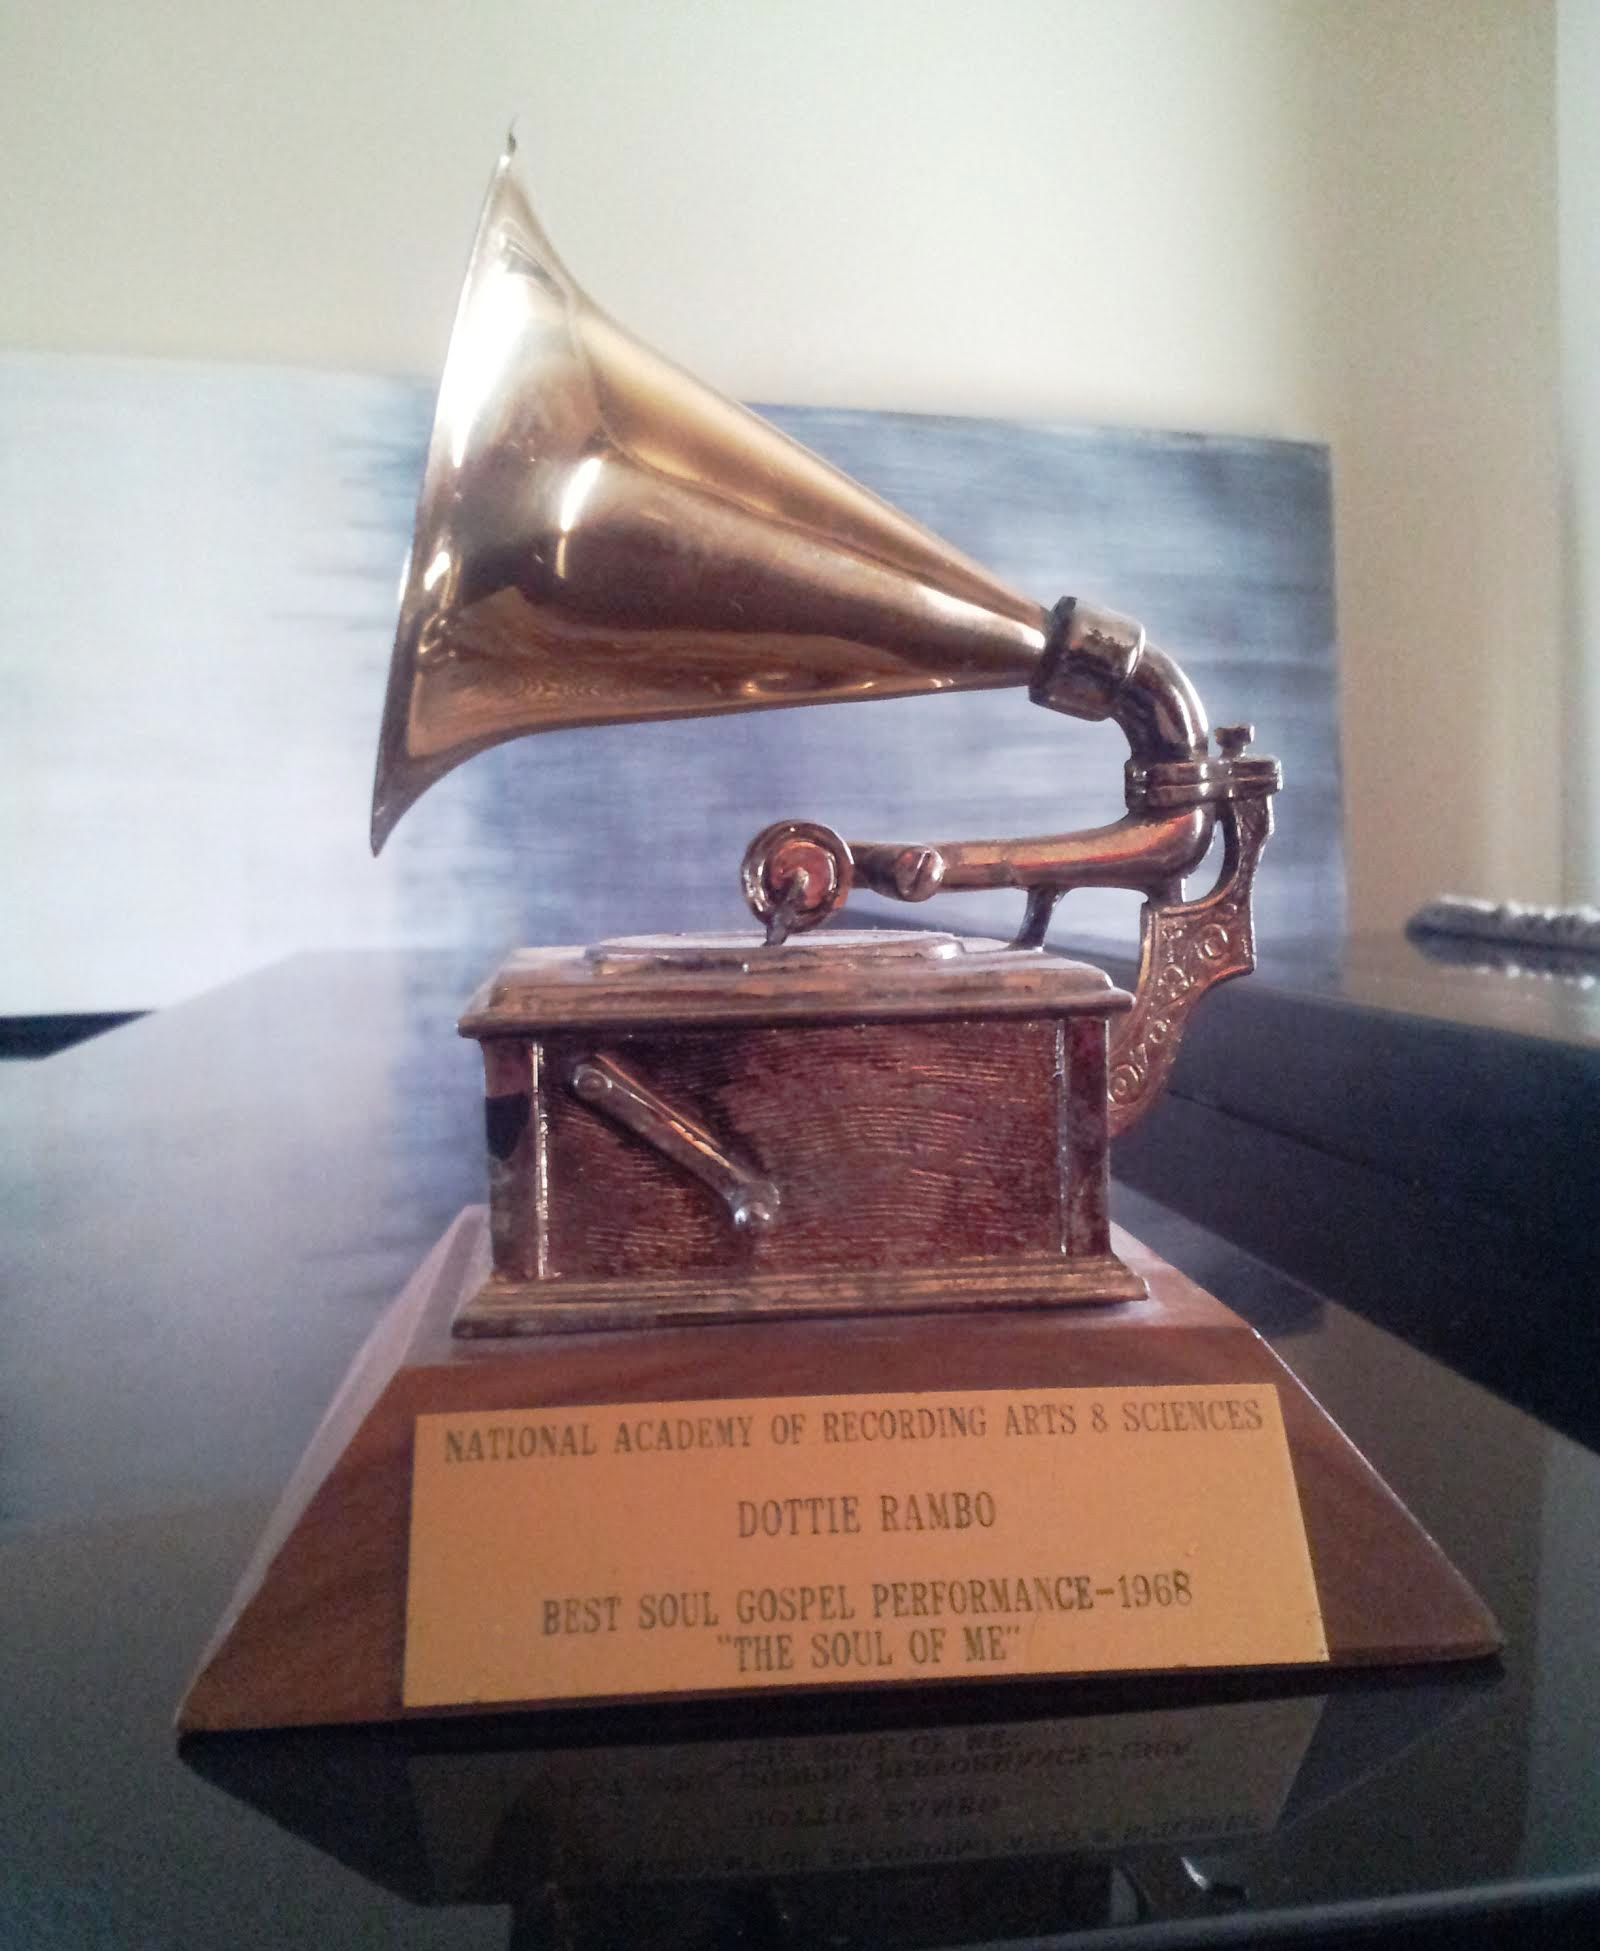 Dottie's GRAMMY Award 1968